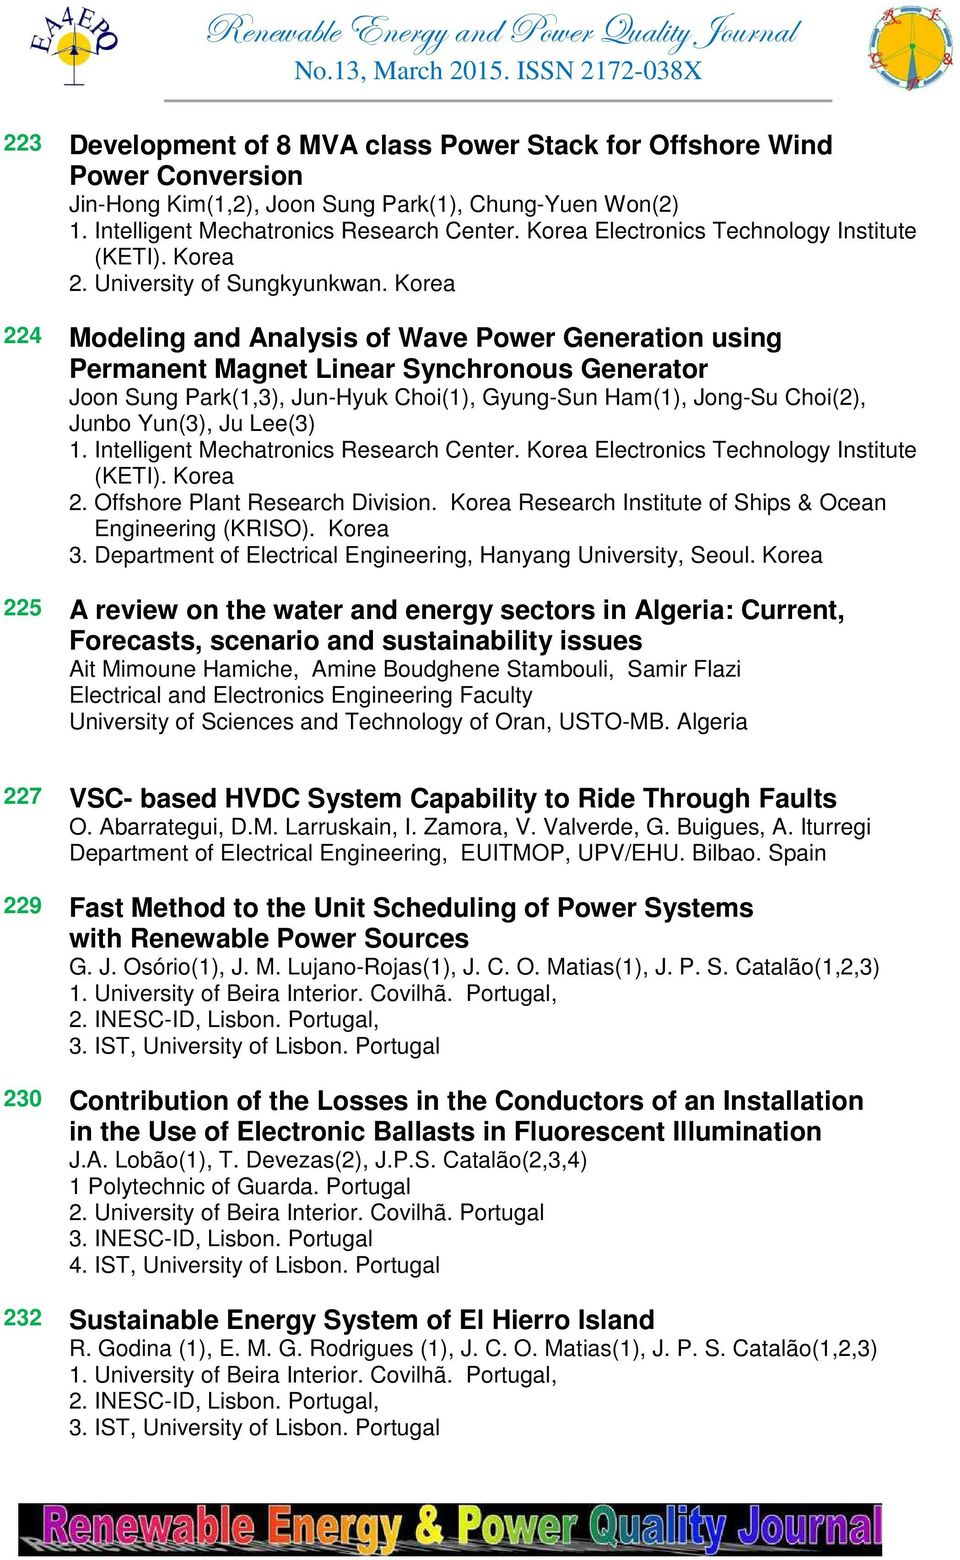 Korea 224 Modeling and Analysis of Wave Power Generation using Permanent Magnet Linear Synchronous Generator Joon Sung Park(1,3), Jun-Hyuk Choi(1), Gyung-Sun Ham(1), Jong-Su Choi(2), Junbo Yun(3), Ju